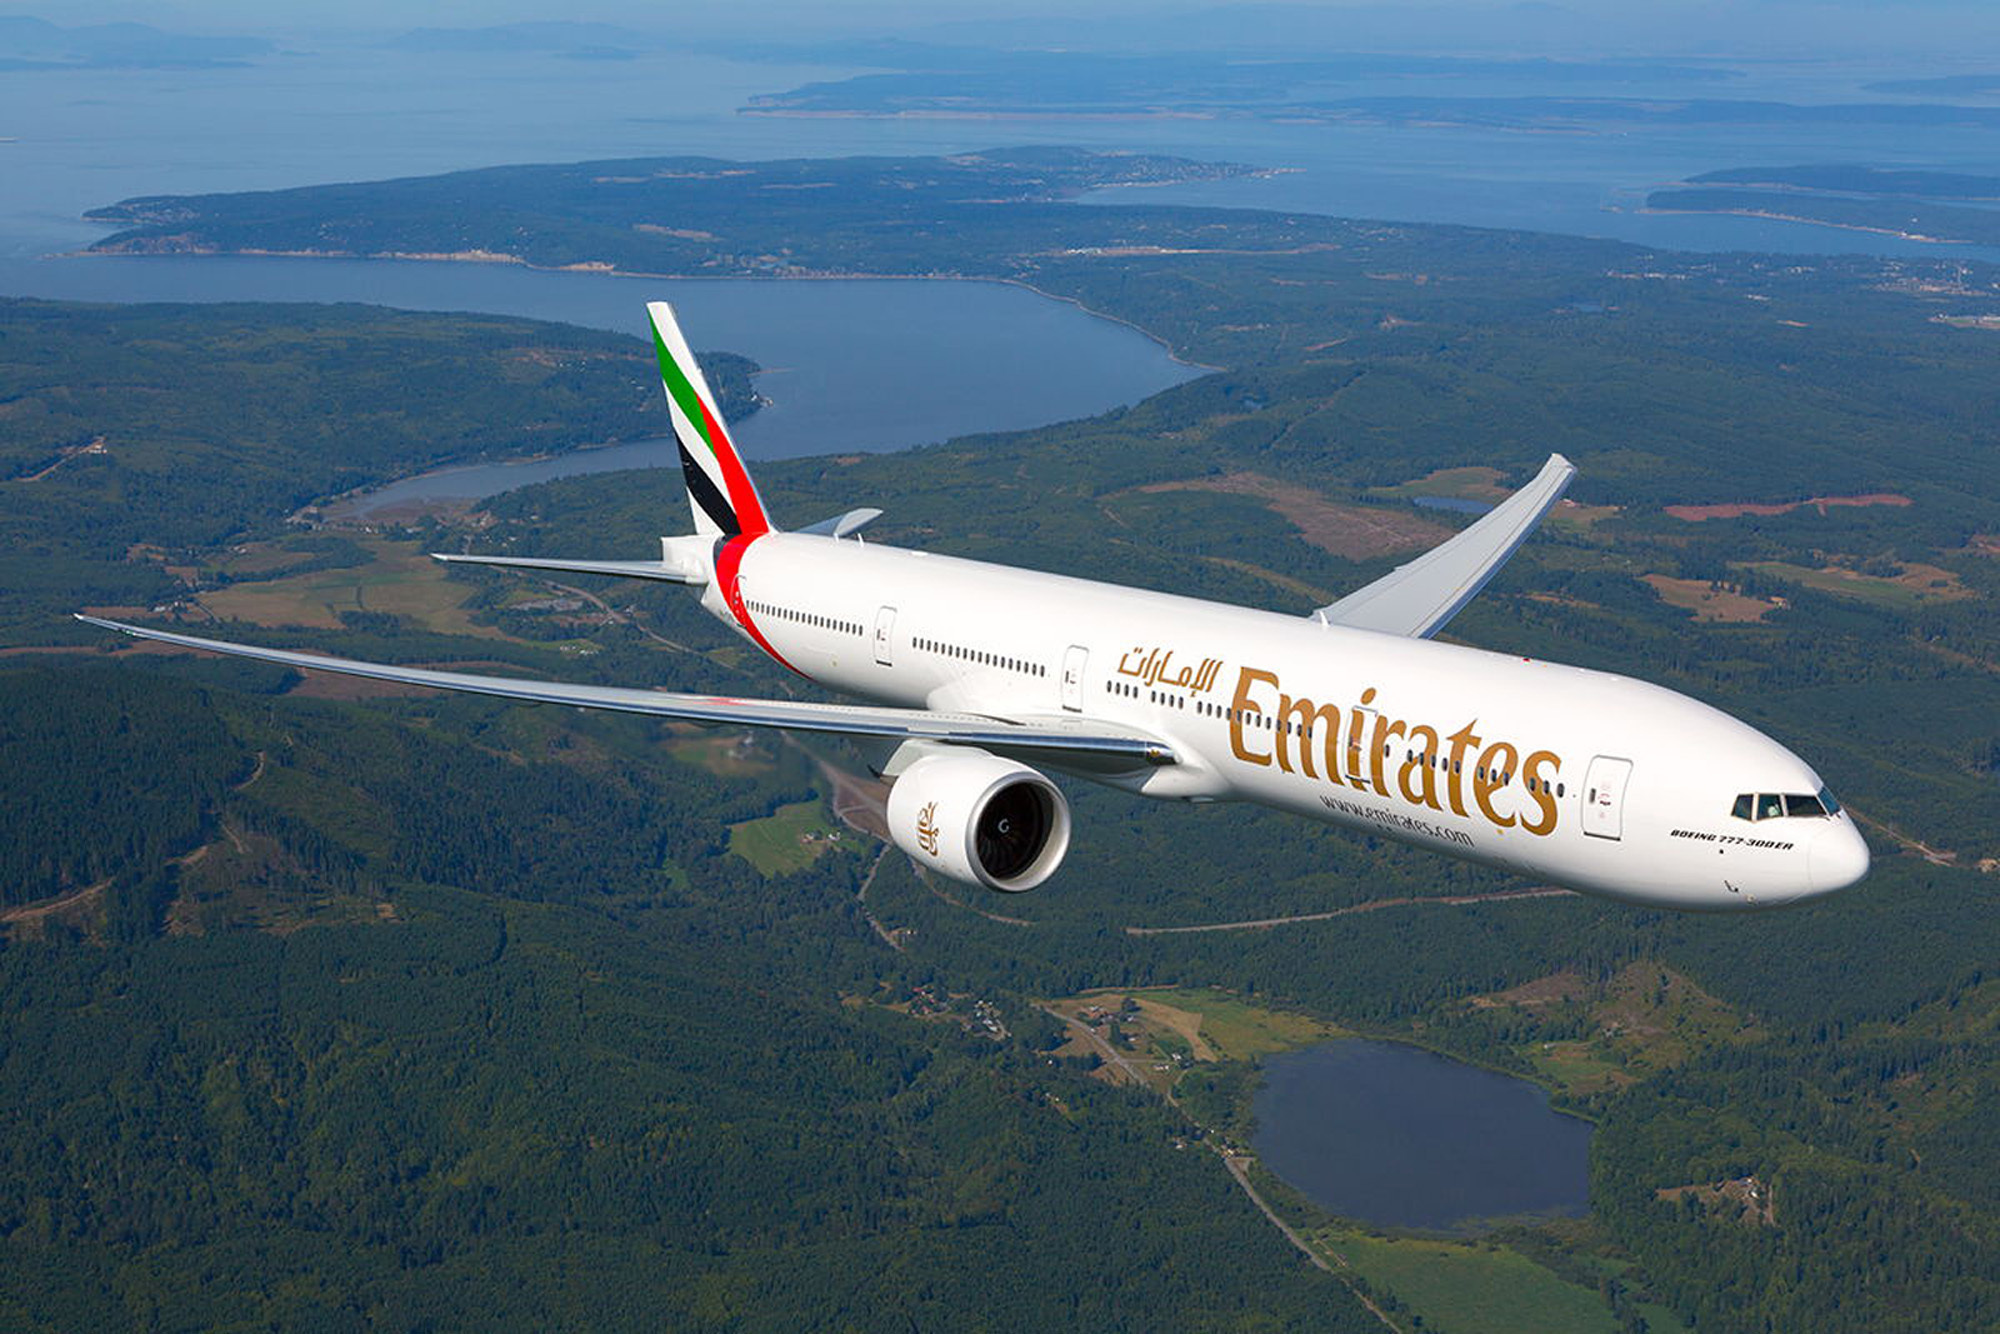 Emirates Orders 20 Airbus A380s Worth $9 Billion